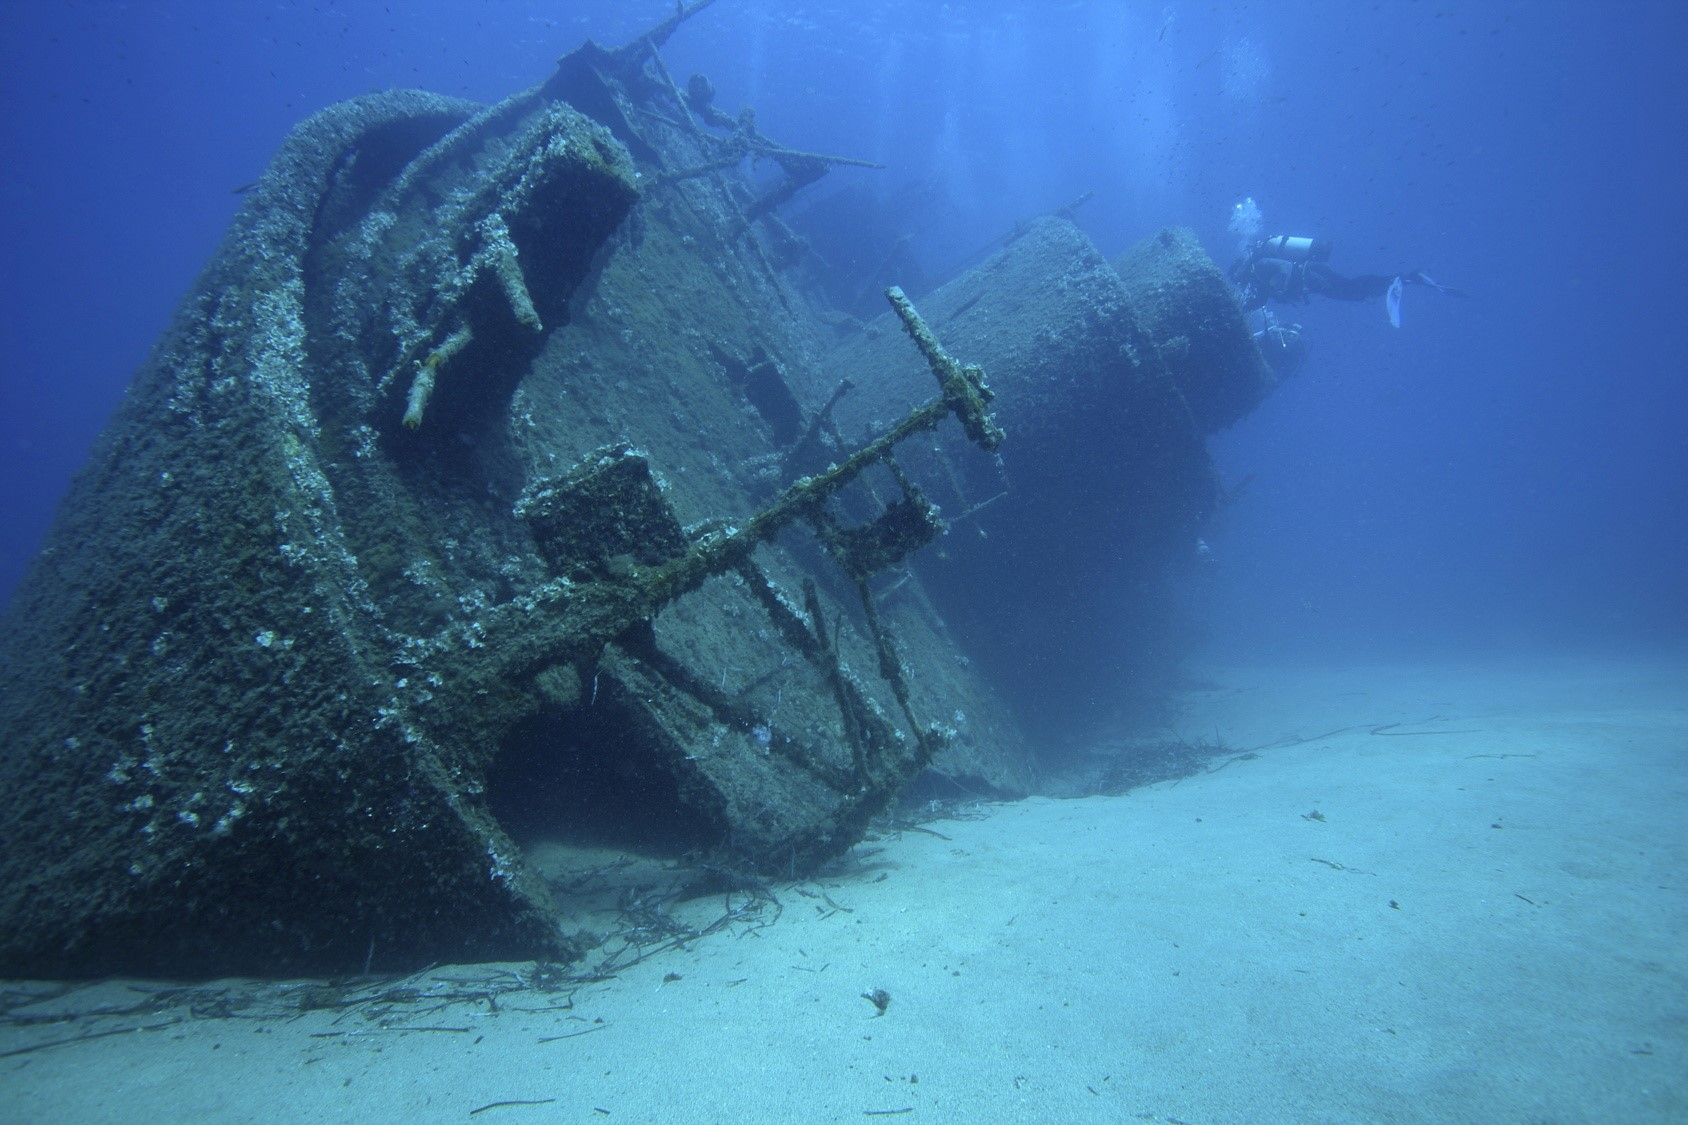 Europe's cultural heritage extends underwater, with thousands of shipwrecks and ruined human settlements at the bottom of the sea. Many of these sites are unreachable by divers and so the EU-funded project ARROWS is on a quest to preserve them. The researchers are combining robots with sophisticated cameras to create low-cost mini-submarines that can autonomously scan vast areas of seafloor without human intervention. Image courtesy of ARROWS